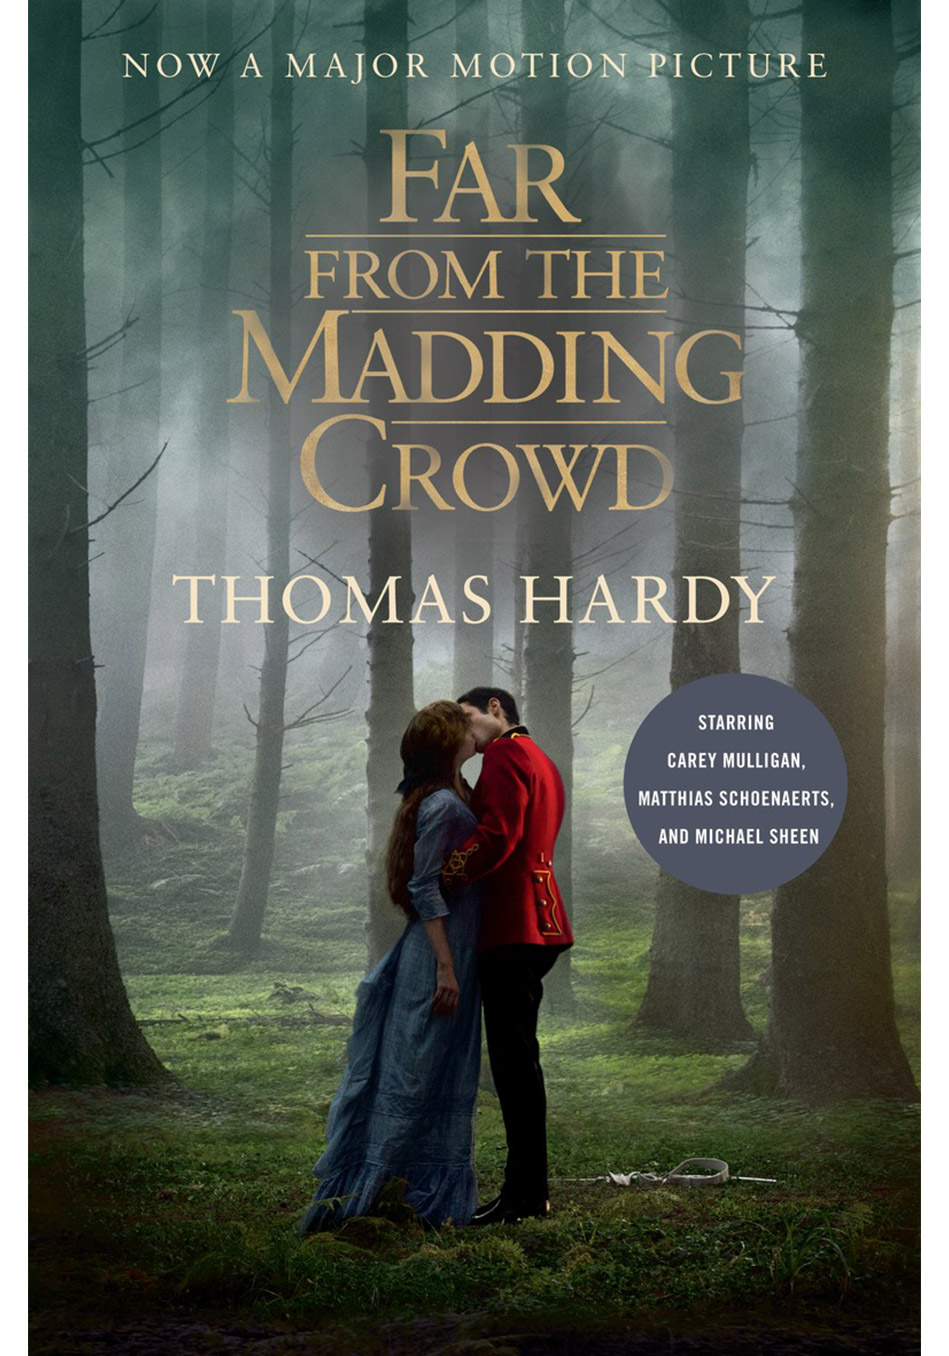 far from the madding crowd 10 essay Far from the madding crowd (1874) is thomas hardy's fourth novel and his first  major literary  the book finished 10th on the guardian's list of greatest love  stories of all time in 2007  feminist essays on hardy : the janus face of  gender.